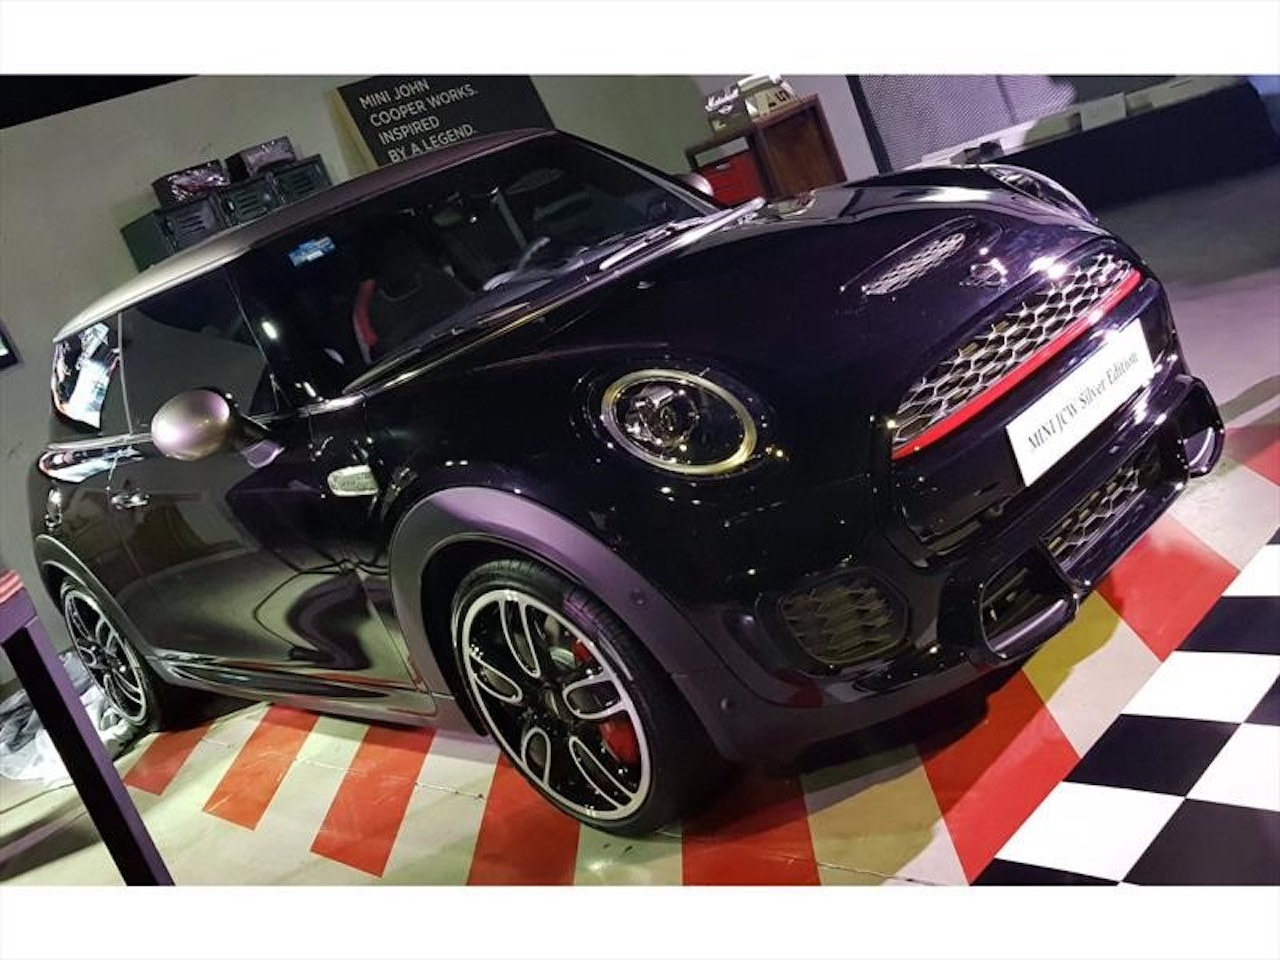 el mini john cooper works silver edition 2019 llega a mexico de manera limitada revolution mx y latam el mini john cooper works silver